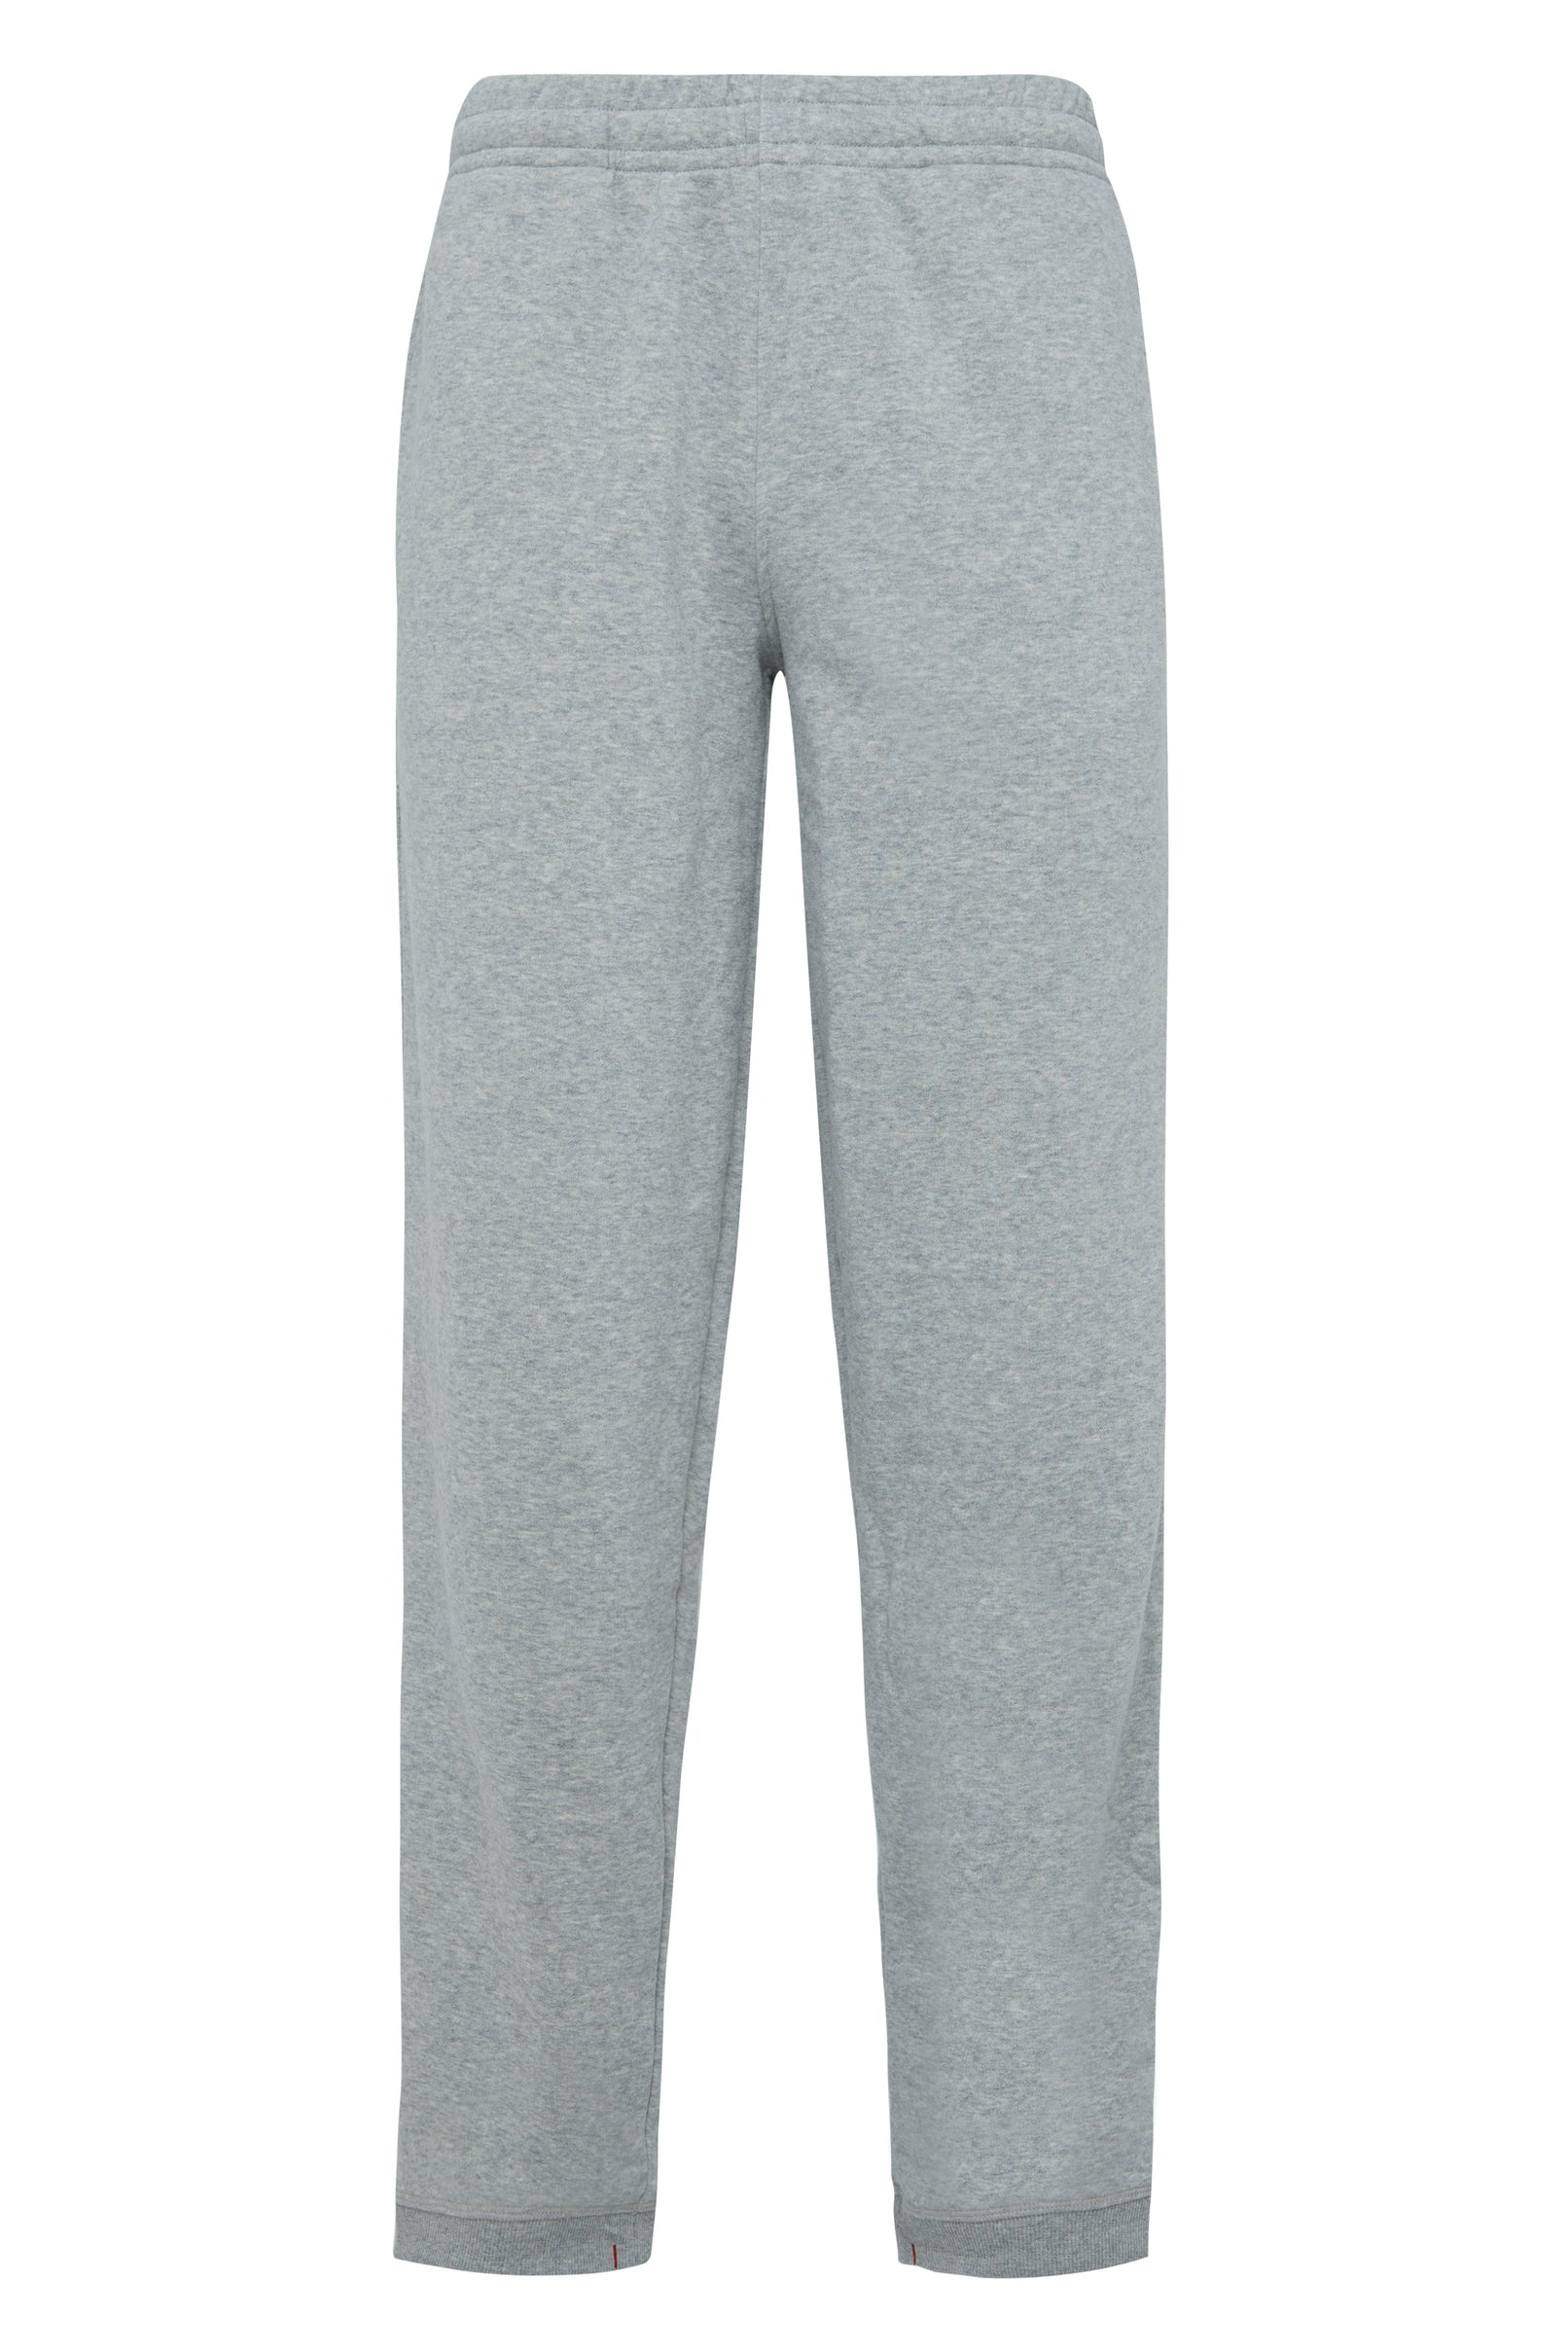 Grey Marl Brushed Soft Handle Sweatpant